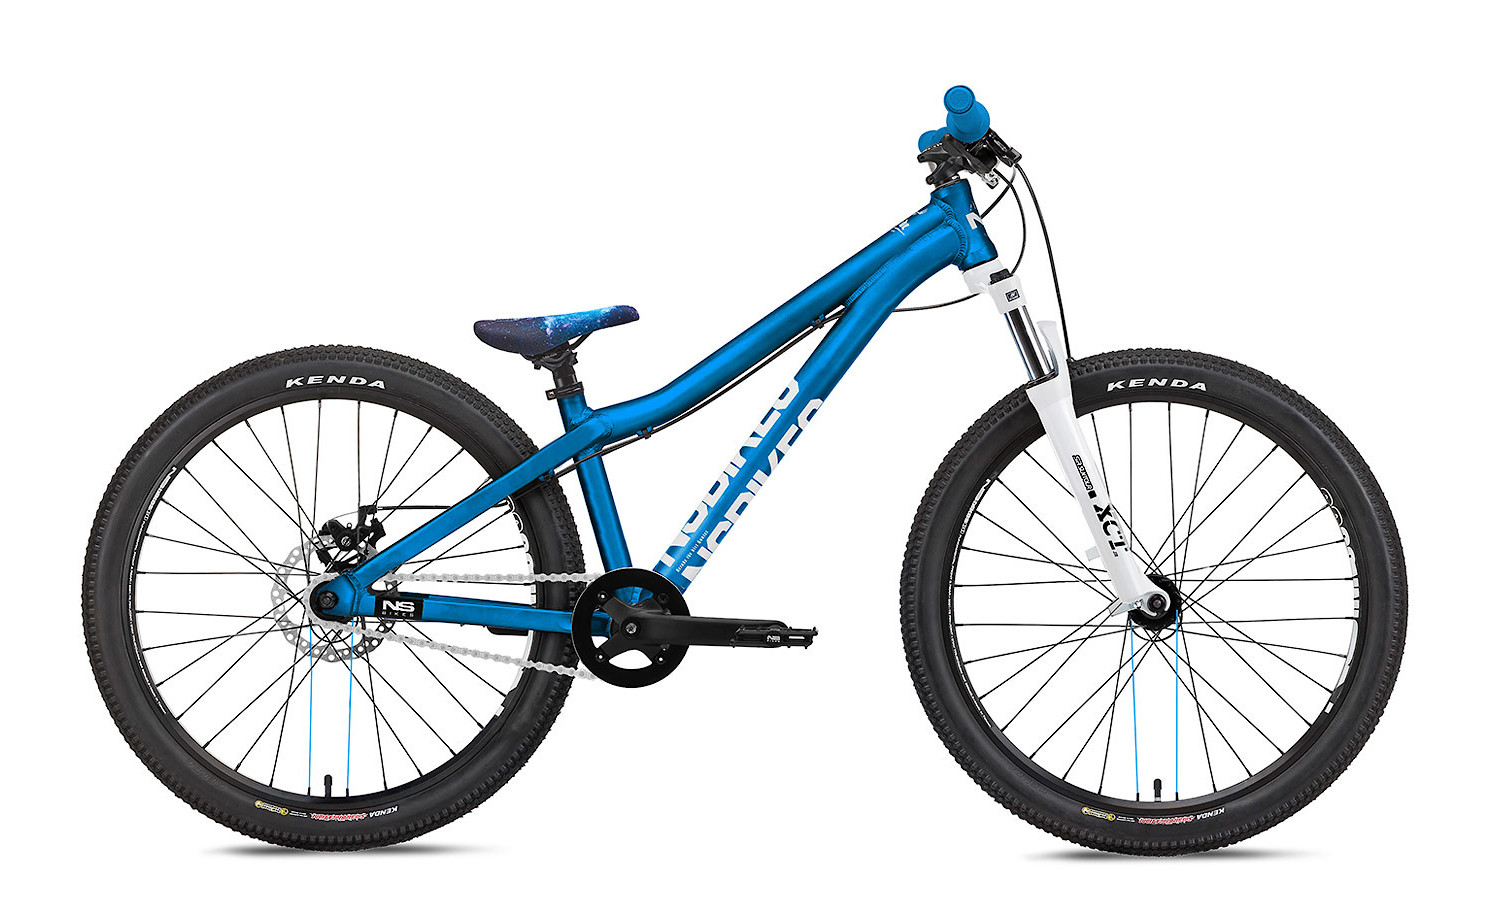 2019 NS Zircus 24 Bike